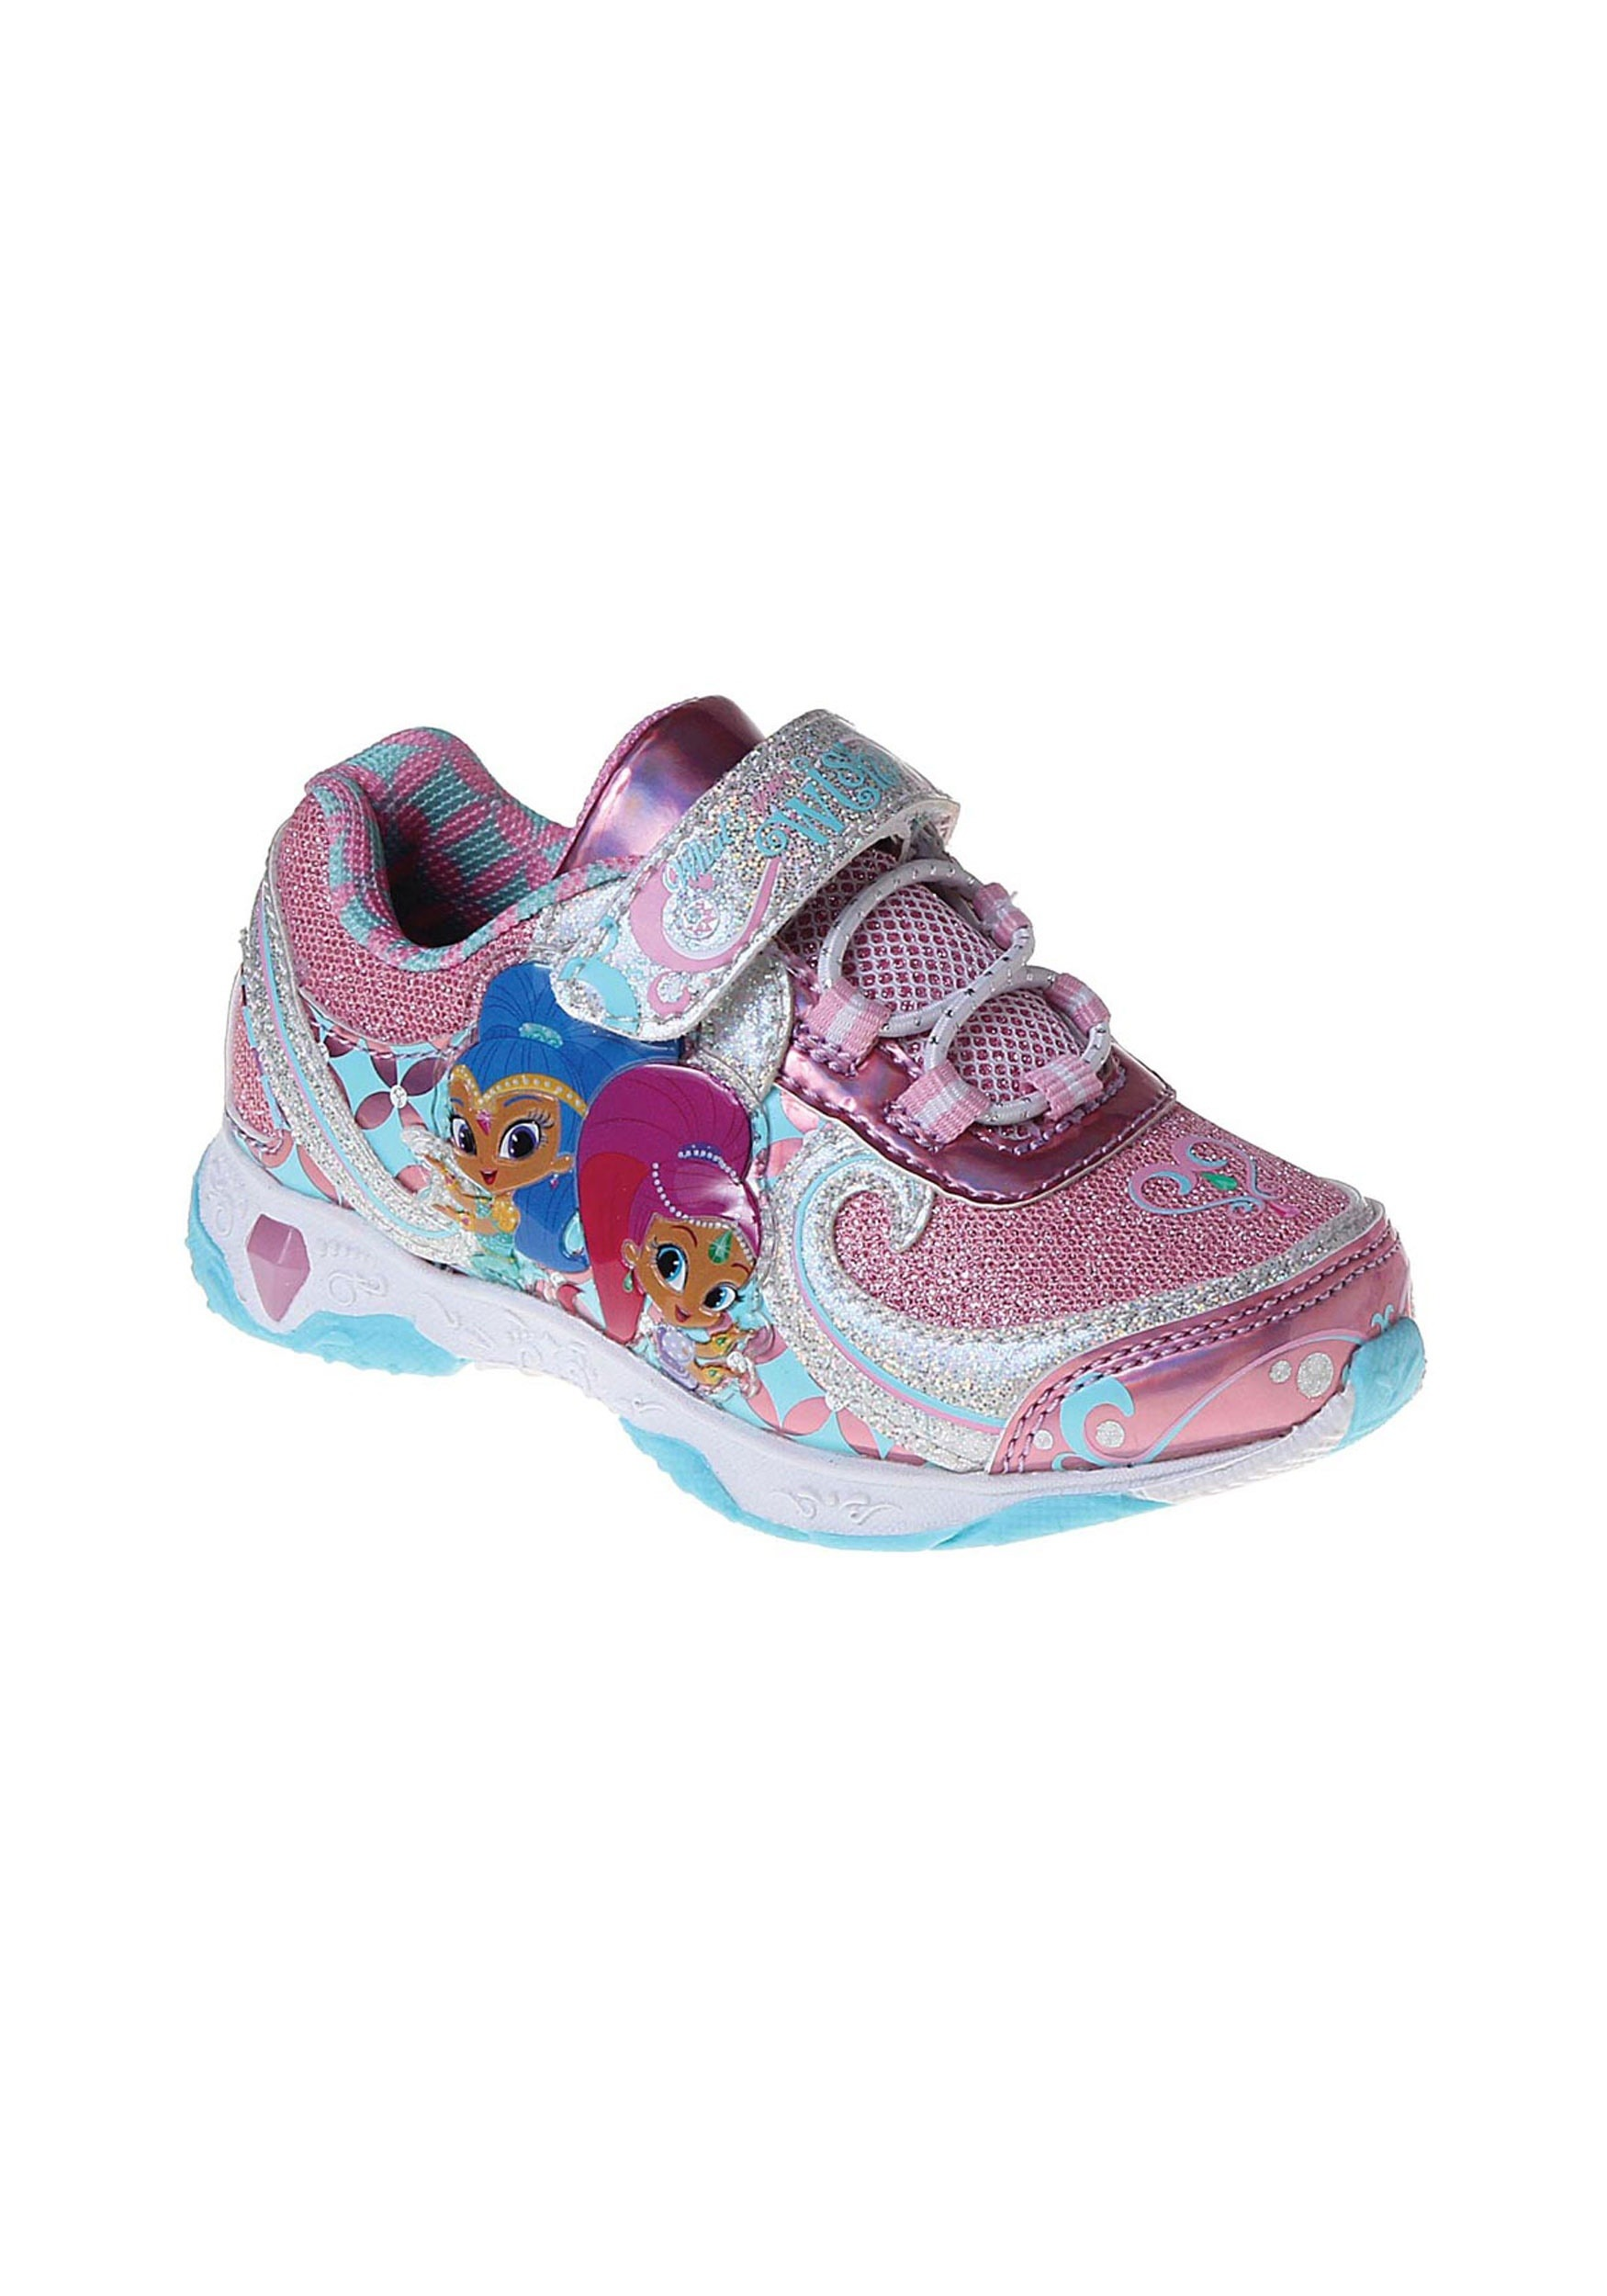 Shimmer and Shine Light Up Sneakers for Girls